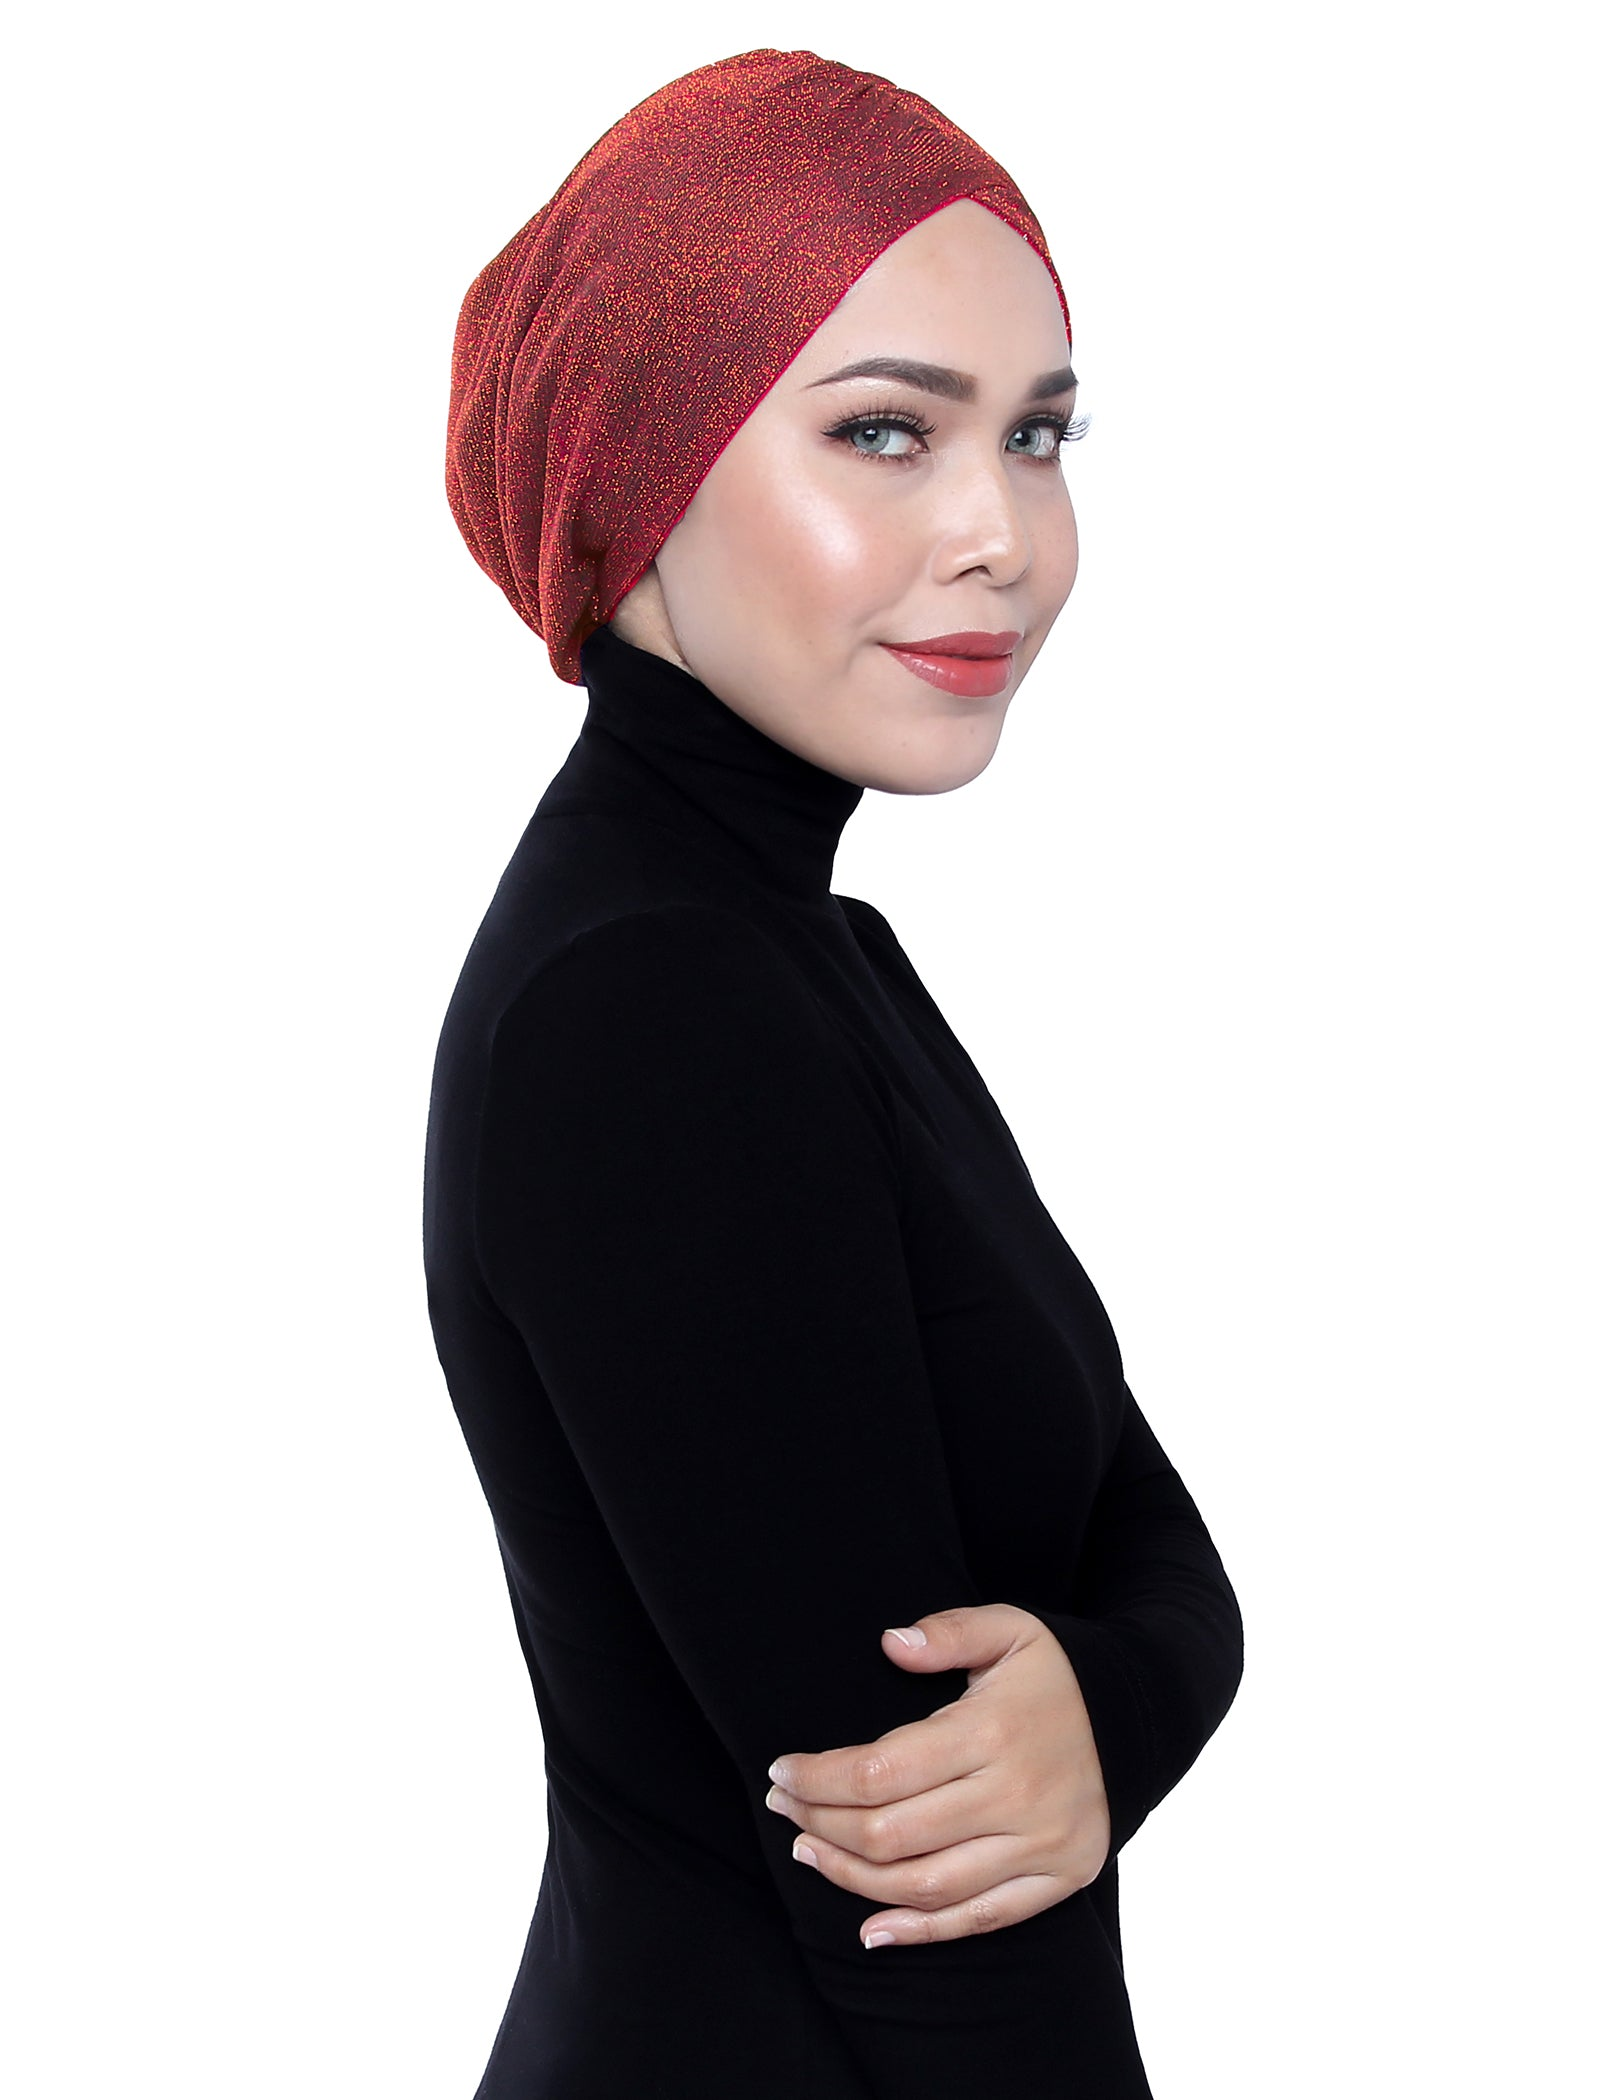 Glitter Gold Knit Turban - Spicy Orange